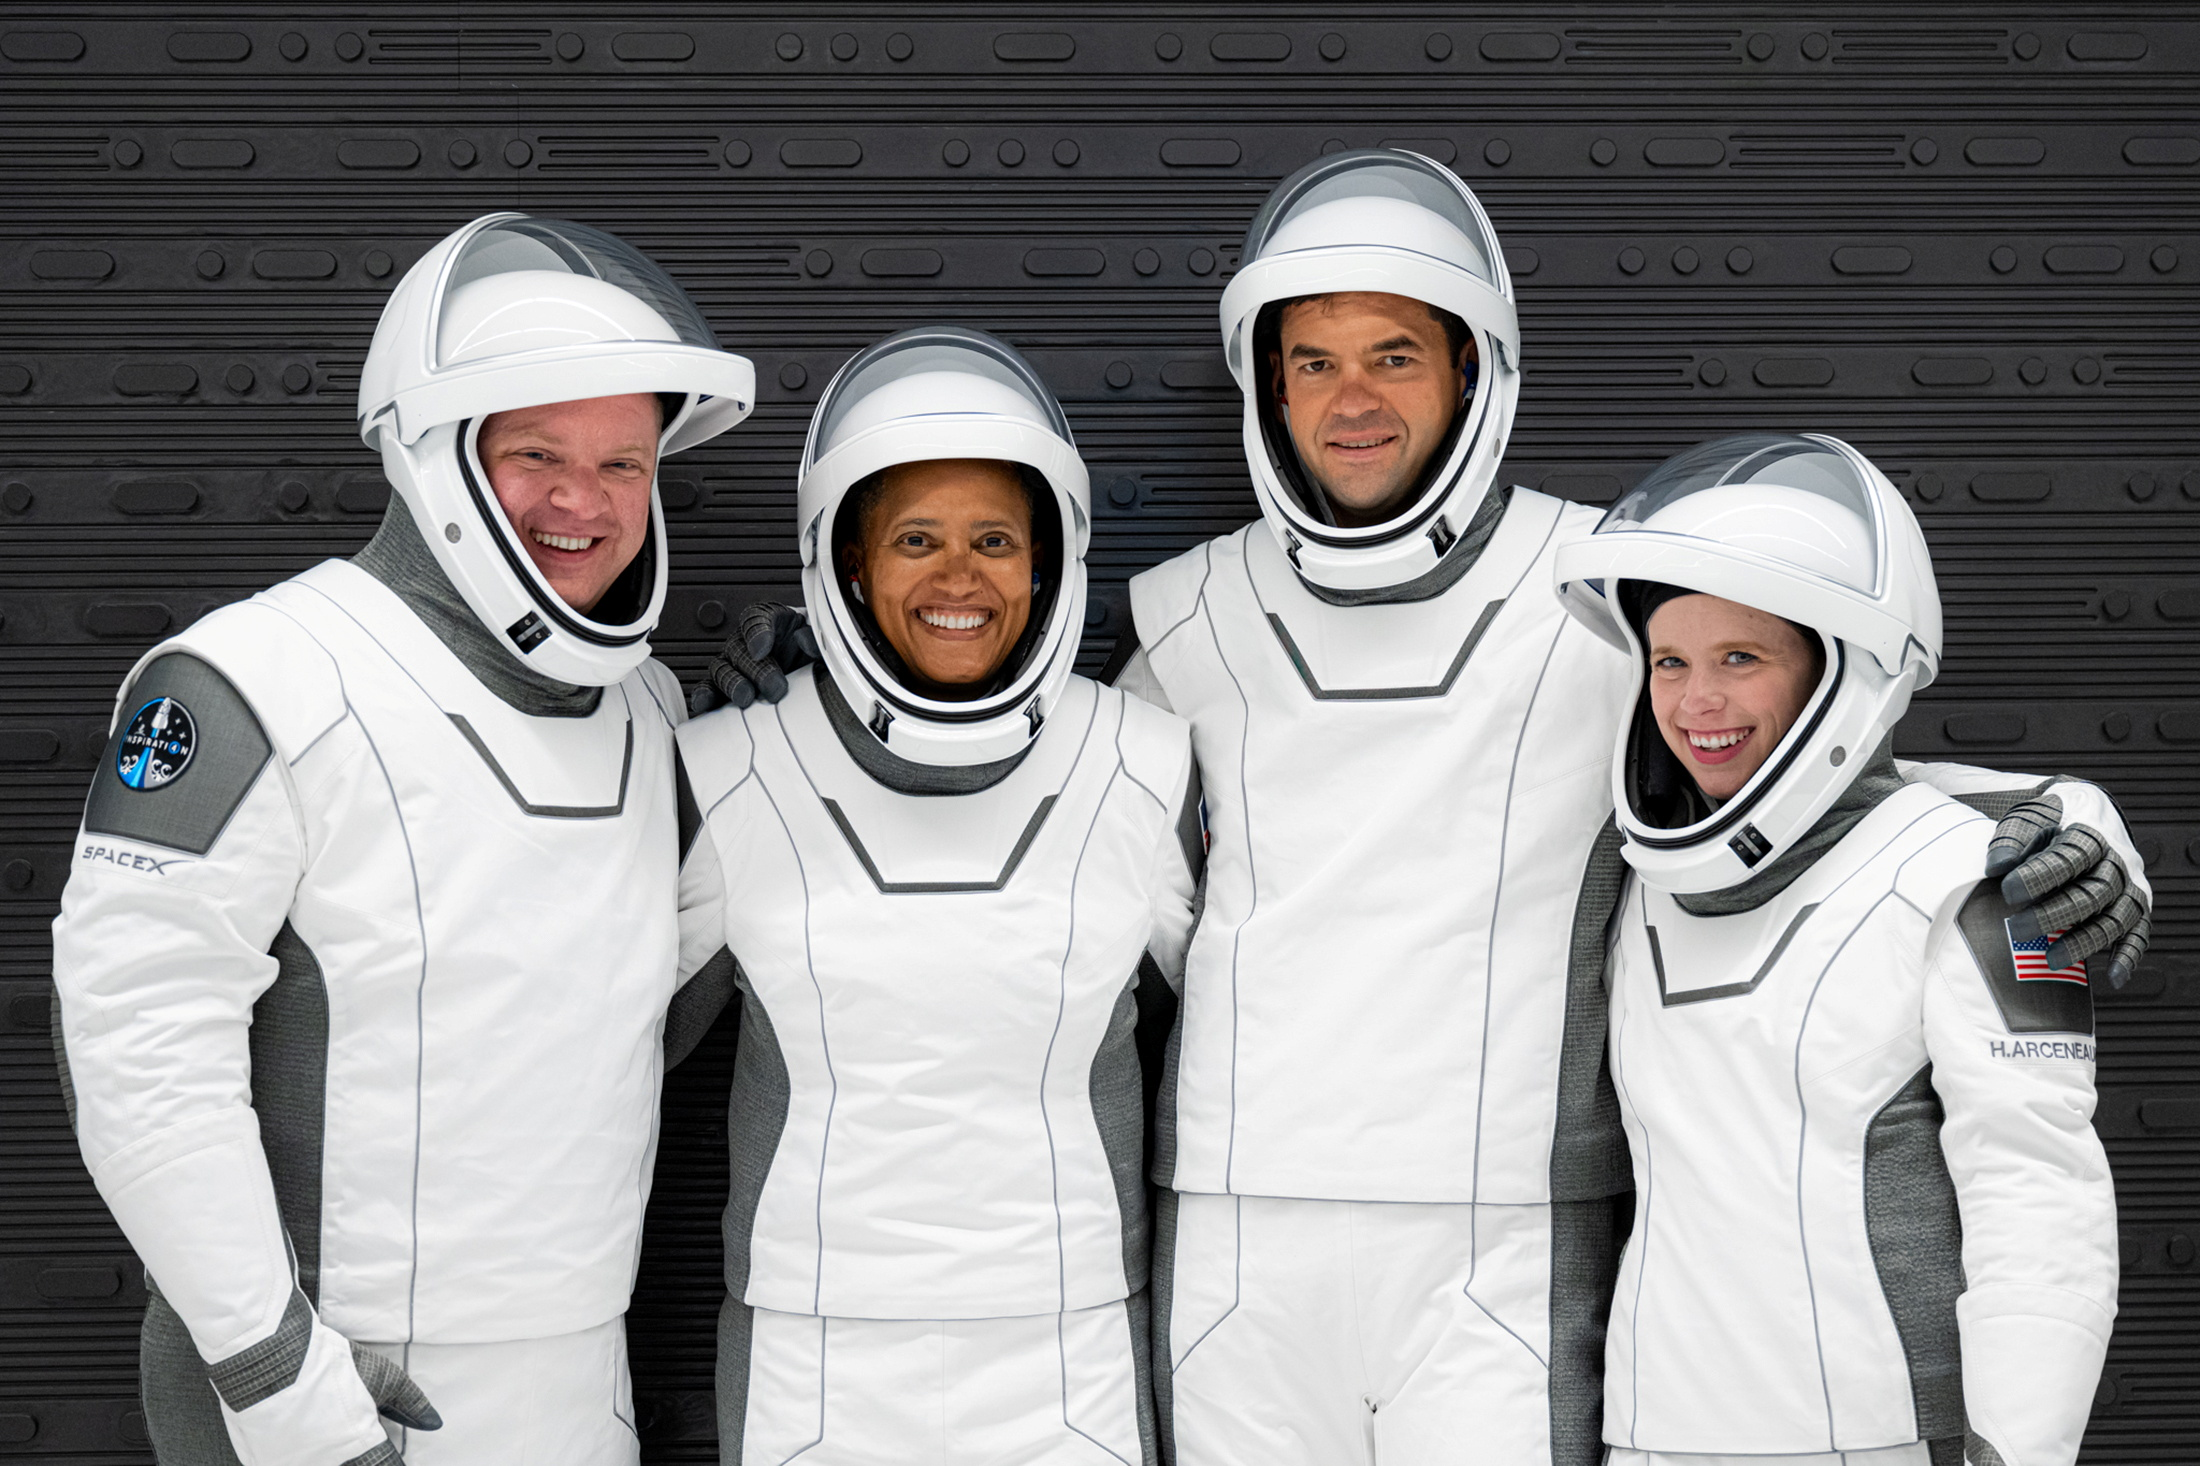 The Inspiration4 crew of Chris Sembroski, Sian Proctor, Jared Isaacman and Hayley Arceneaux poses while suited up for a launch rehearsal in Cape Canaveral, Florida September 12, 2021. Inspiration4/John Kraus/Handout via REUTERS